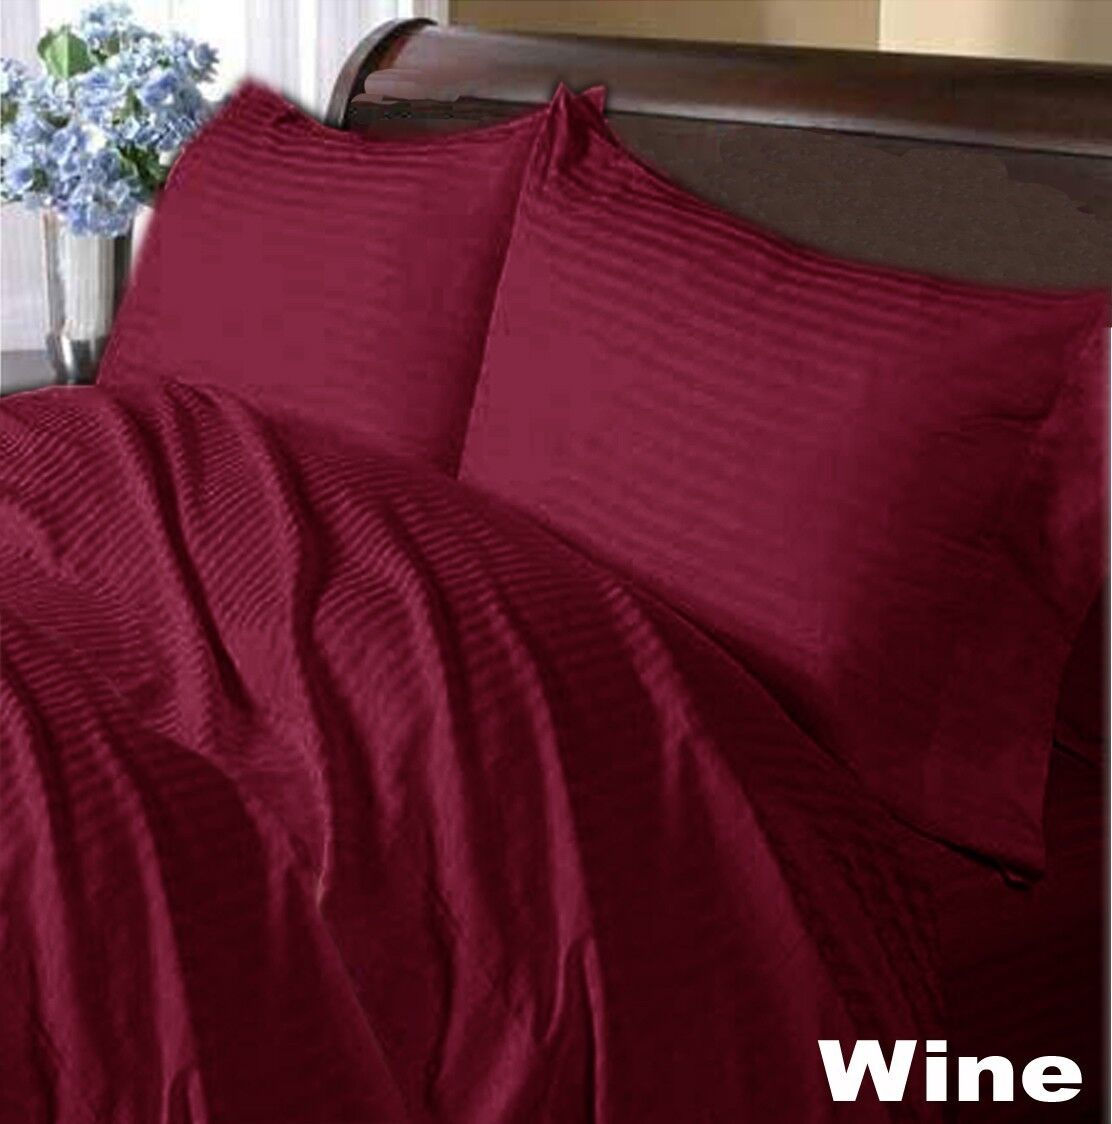 WINE STRIPE FITTED SHEET DUVET SET SKIRT 1000TC 100%COTTON CHOOSE ITEMS & SIZE